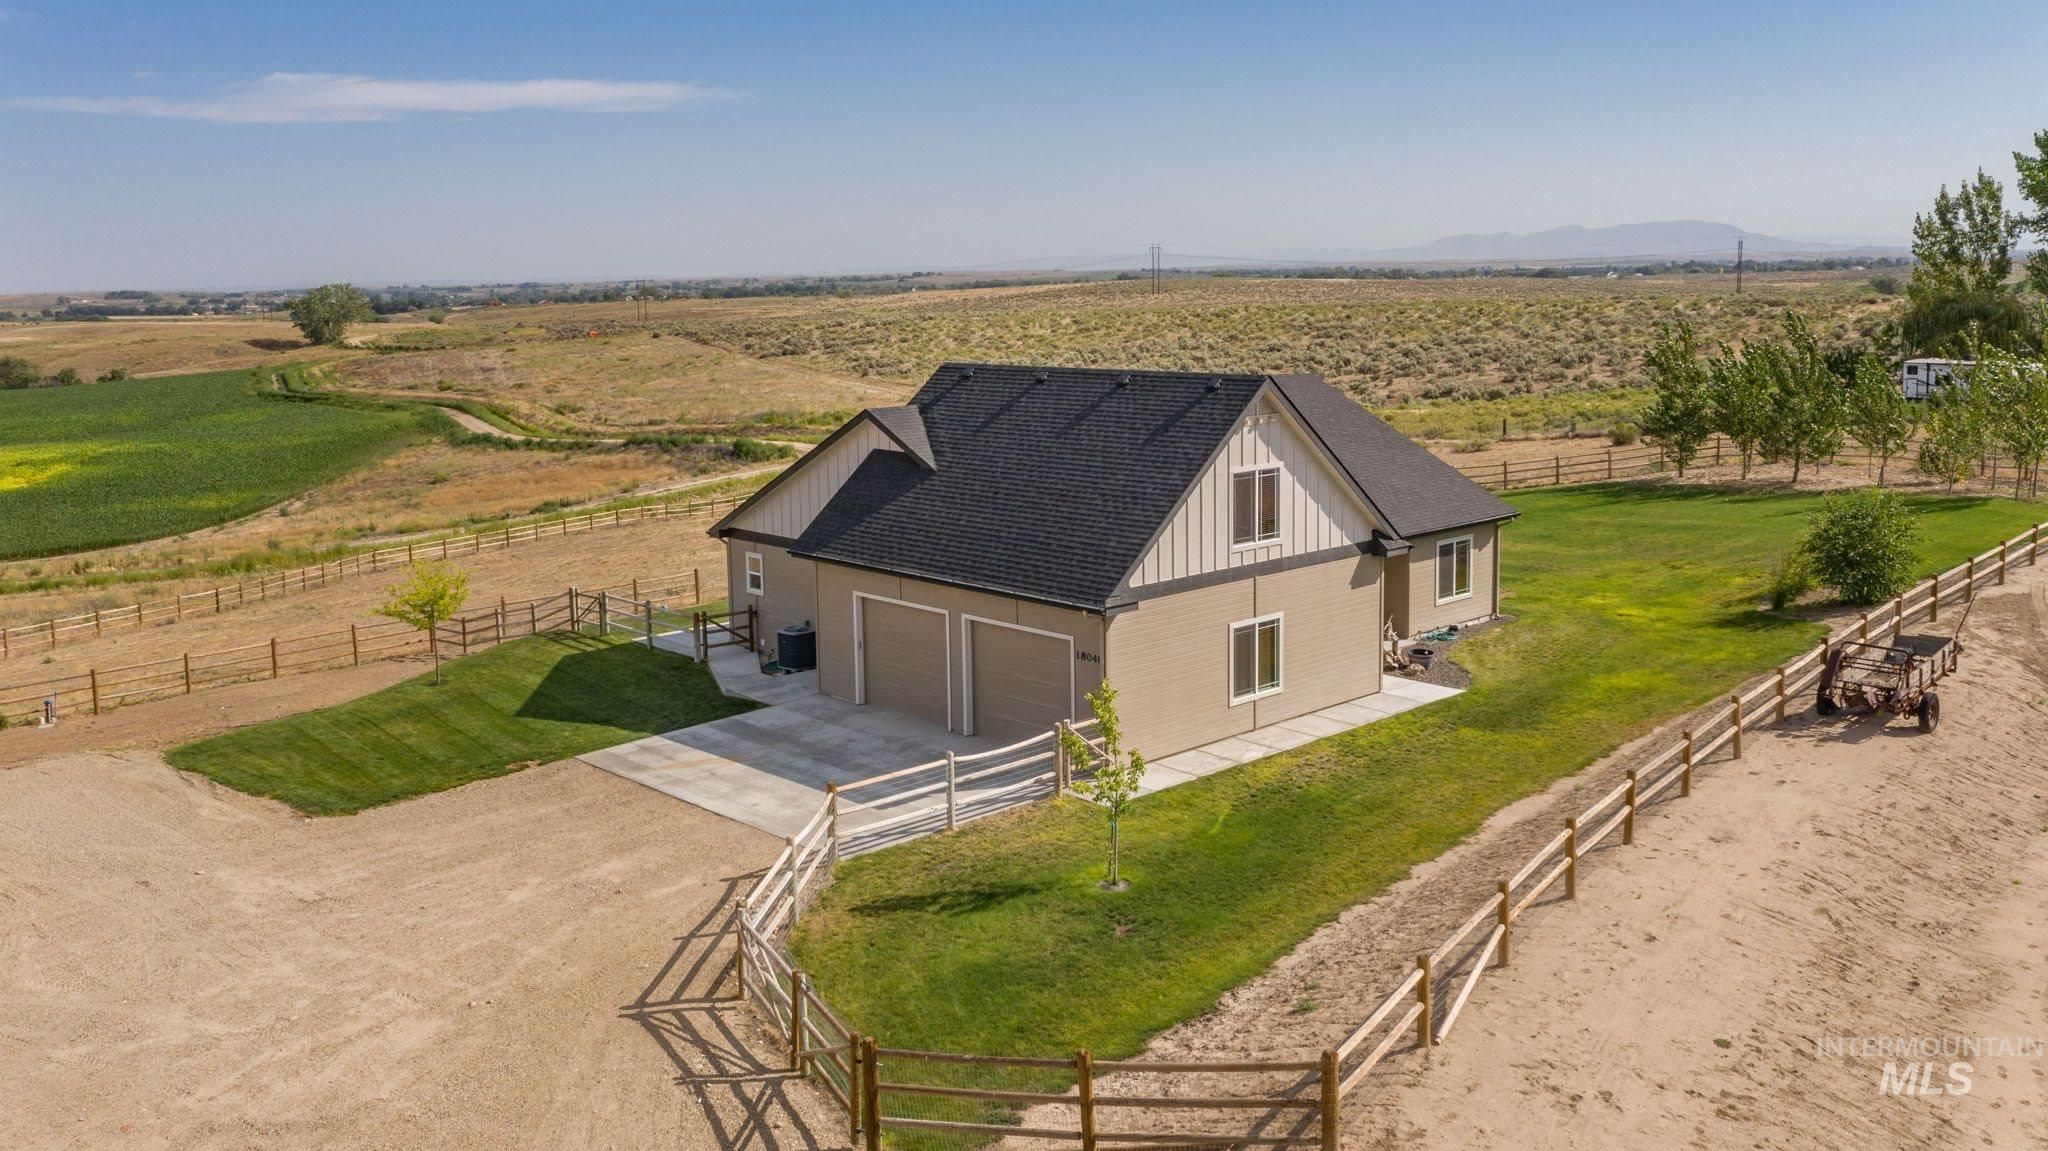 Photo for 18048 Goodson Rd, Caldwell, ID 83607 (MLS # 98775739)